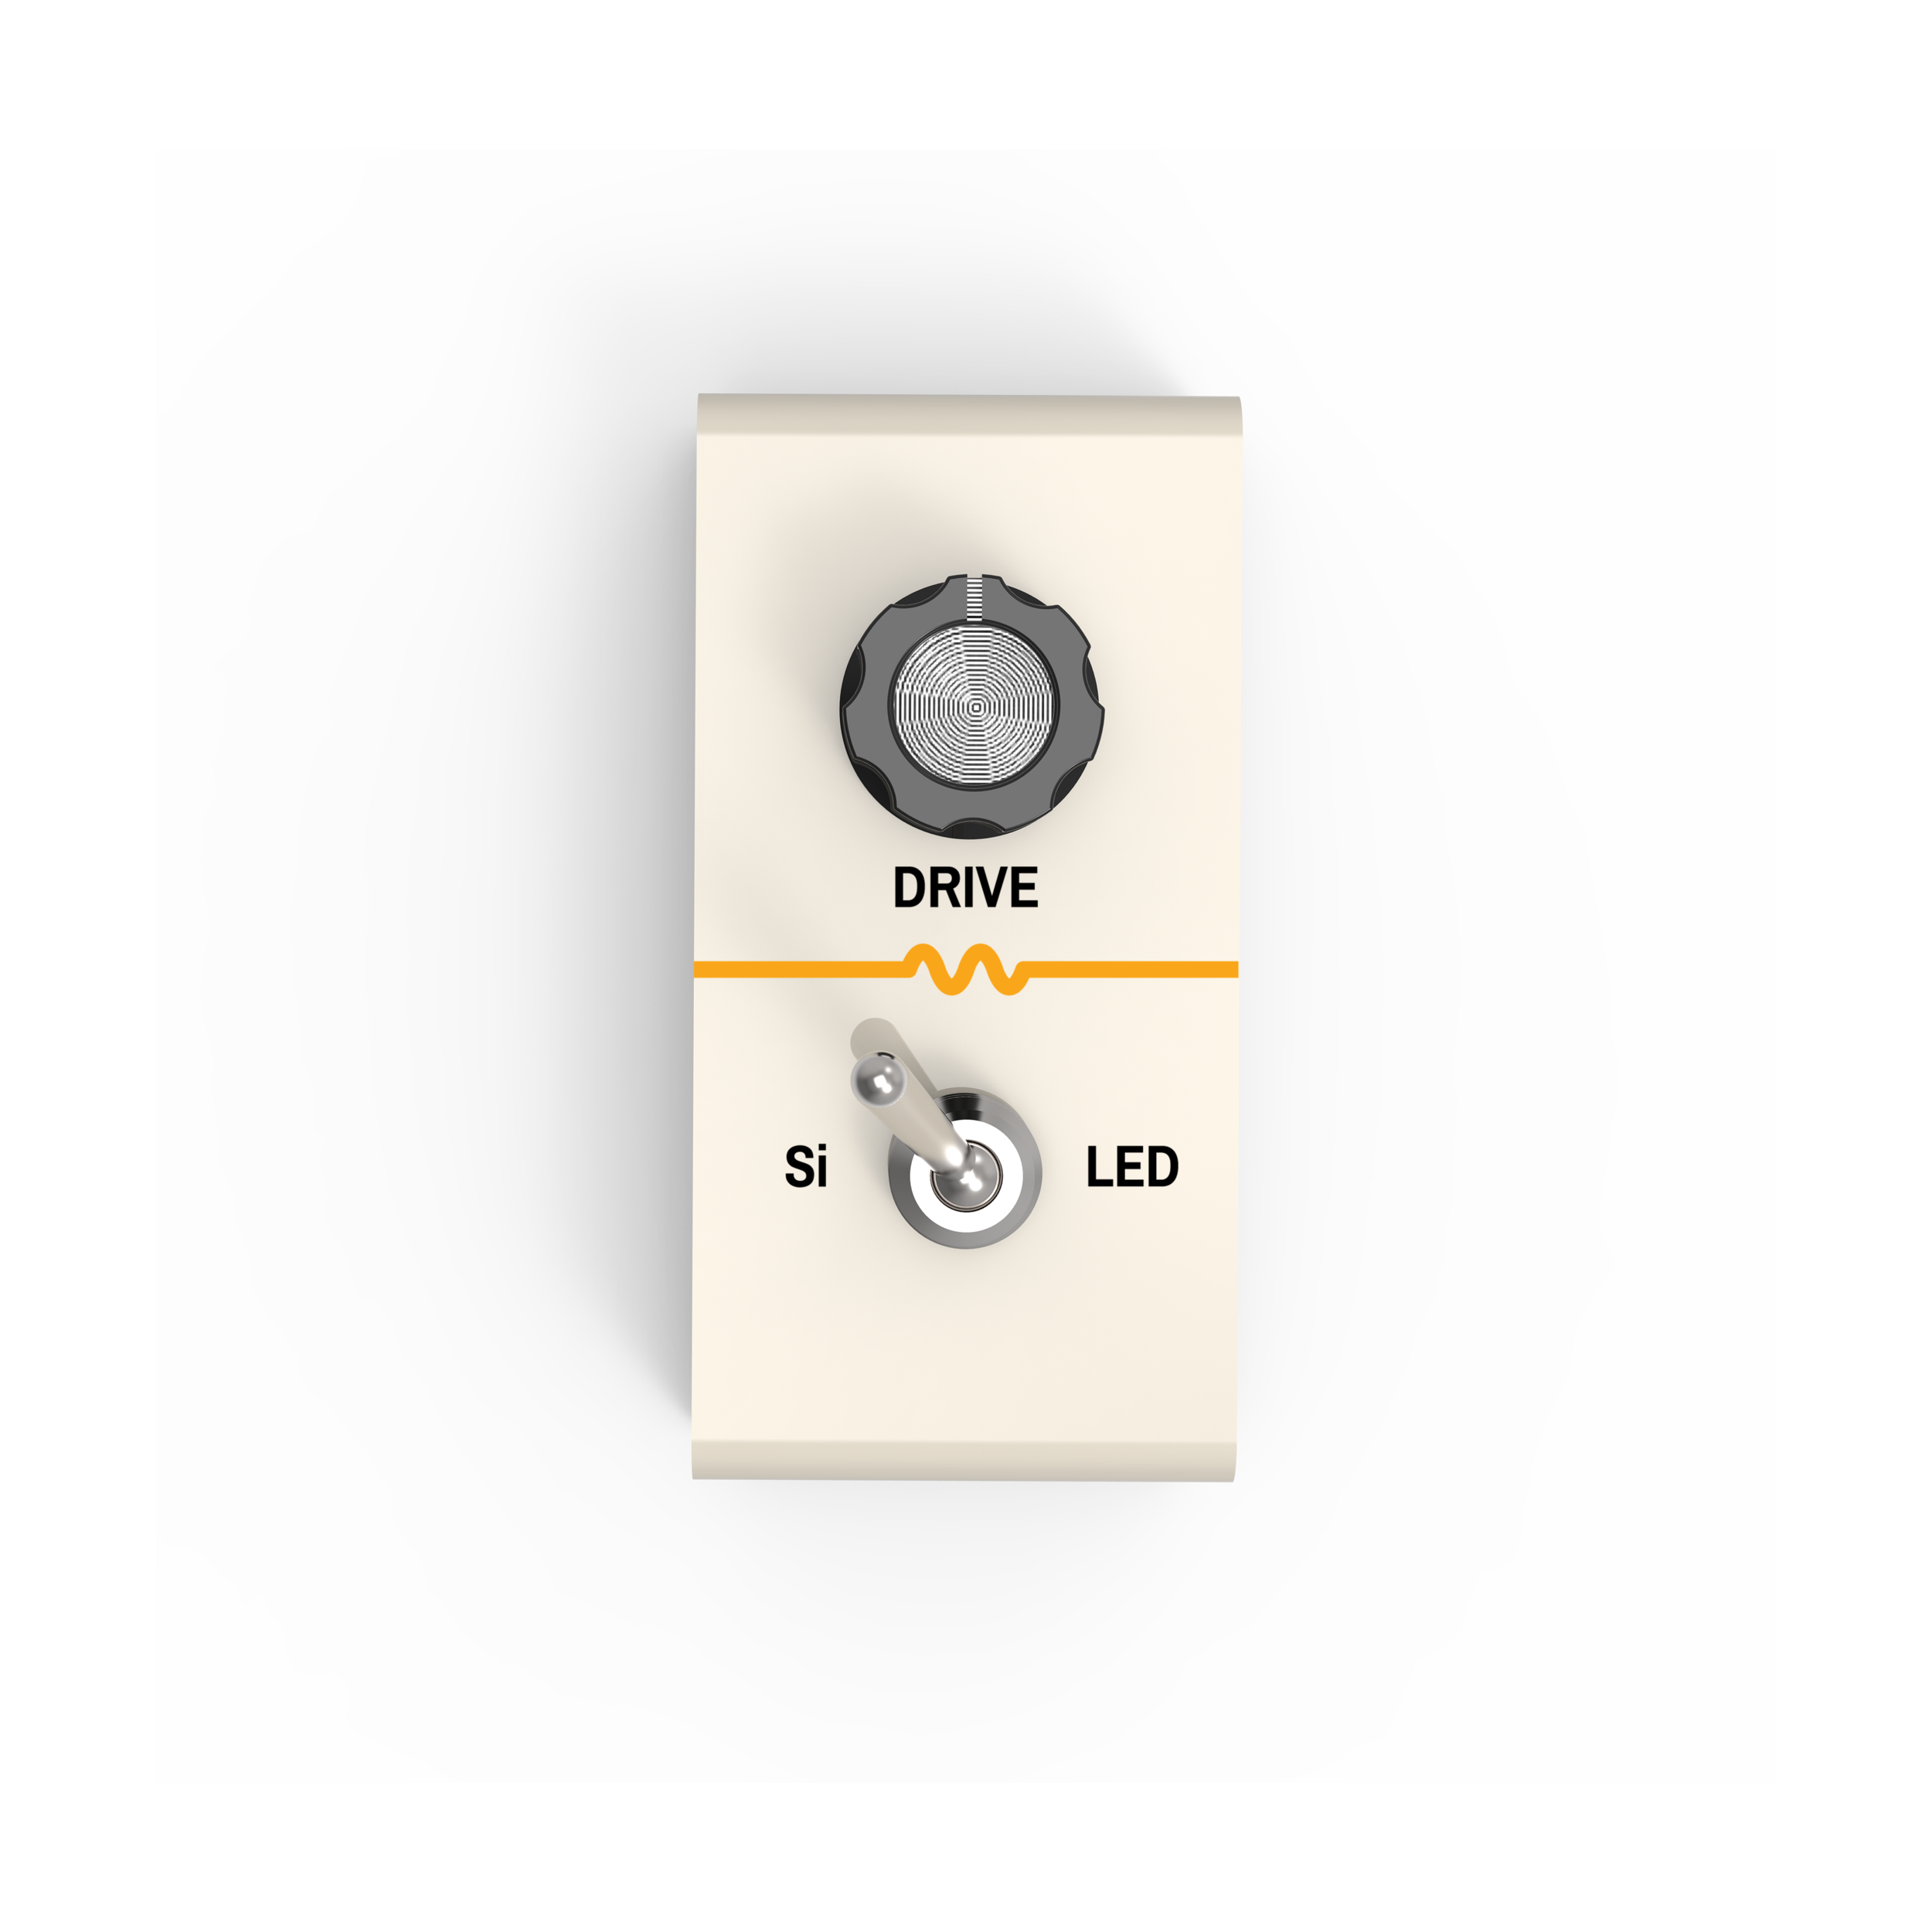 2.1drive (2).png